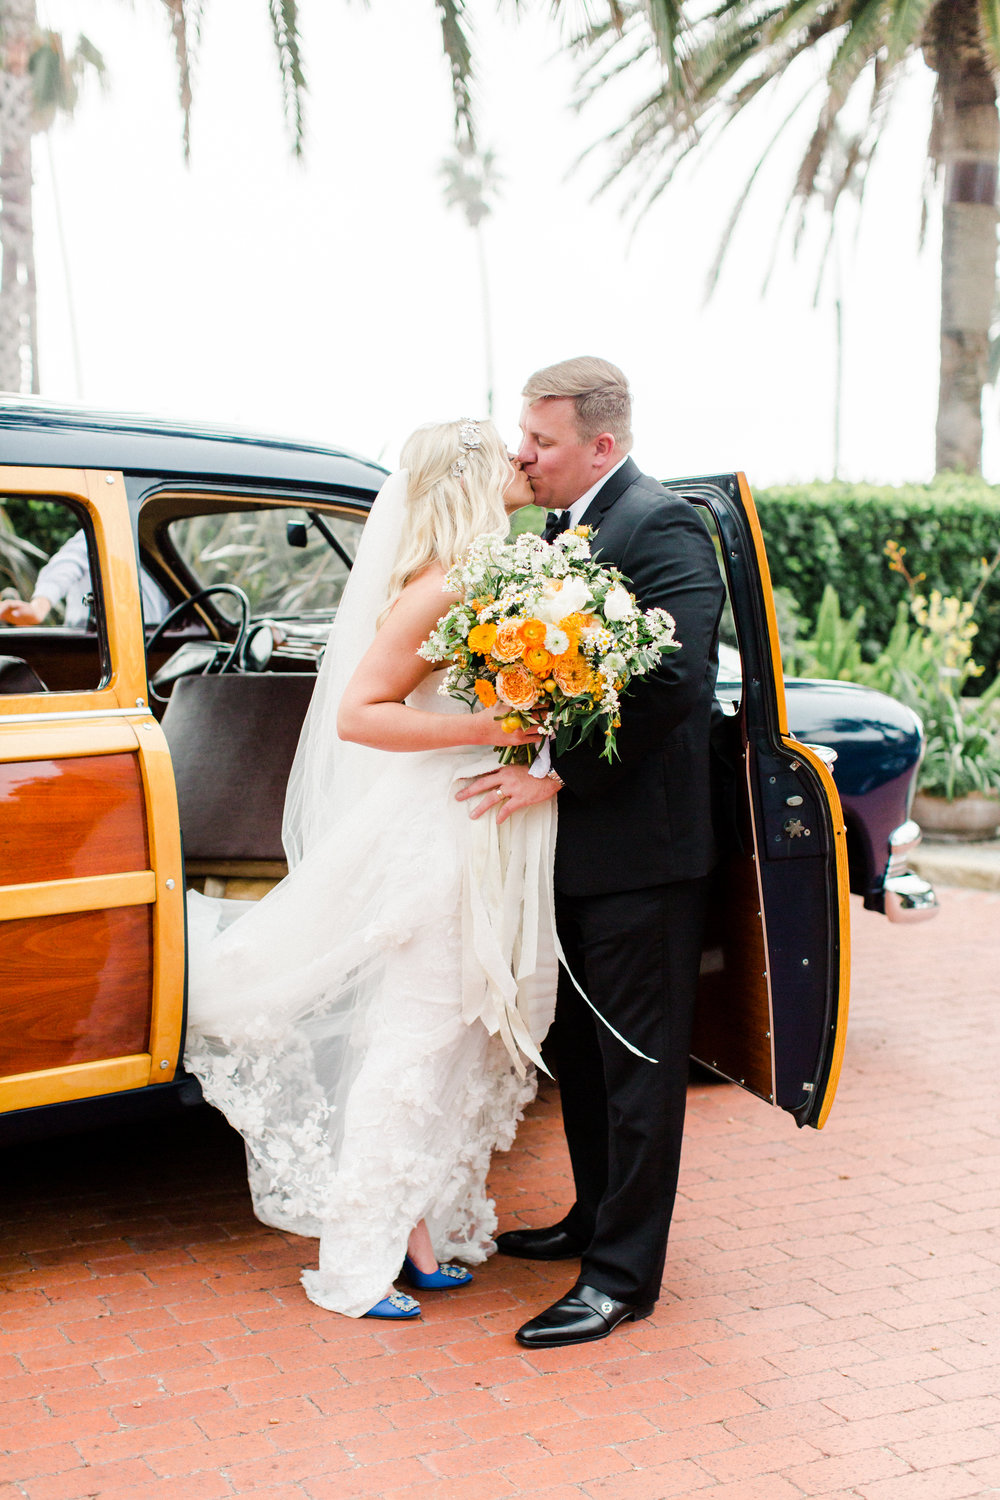 Anna Delores Photography_Amy & Justin 10.28.17-615.jpg